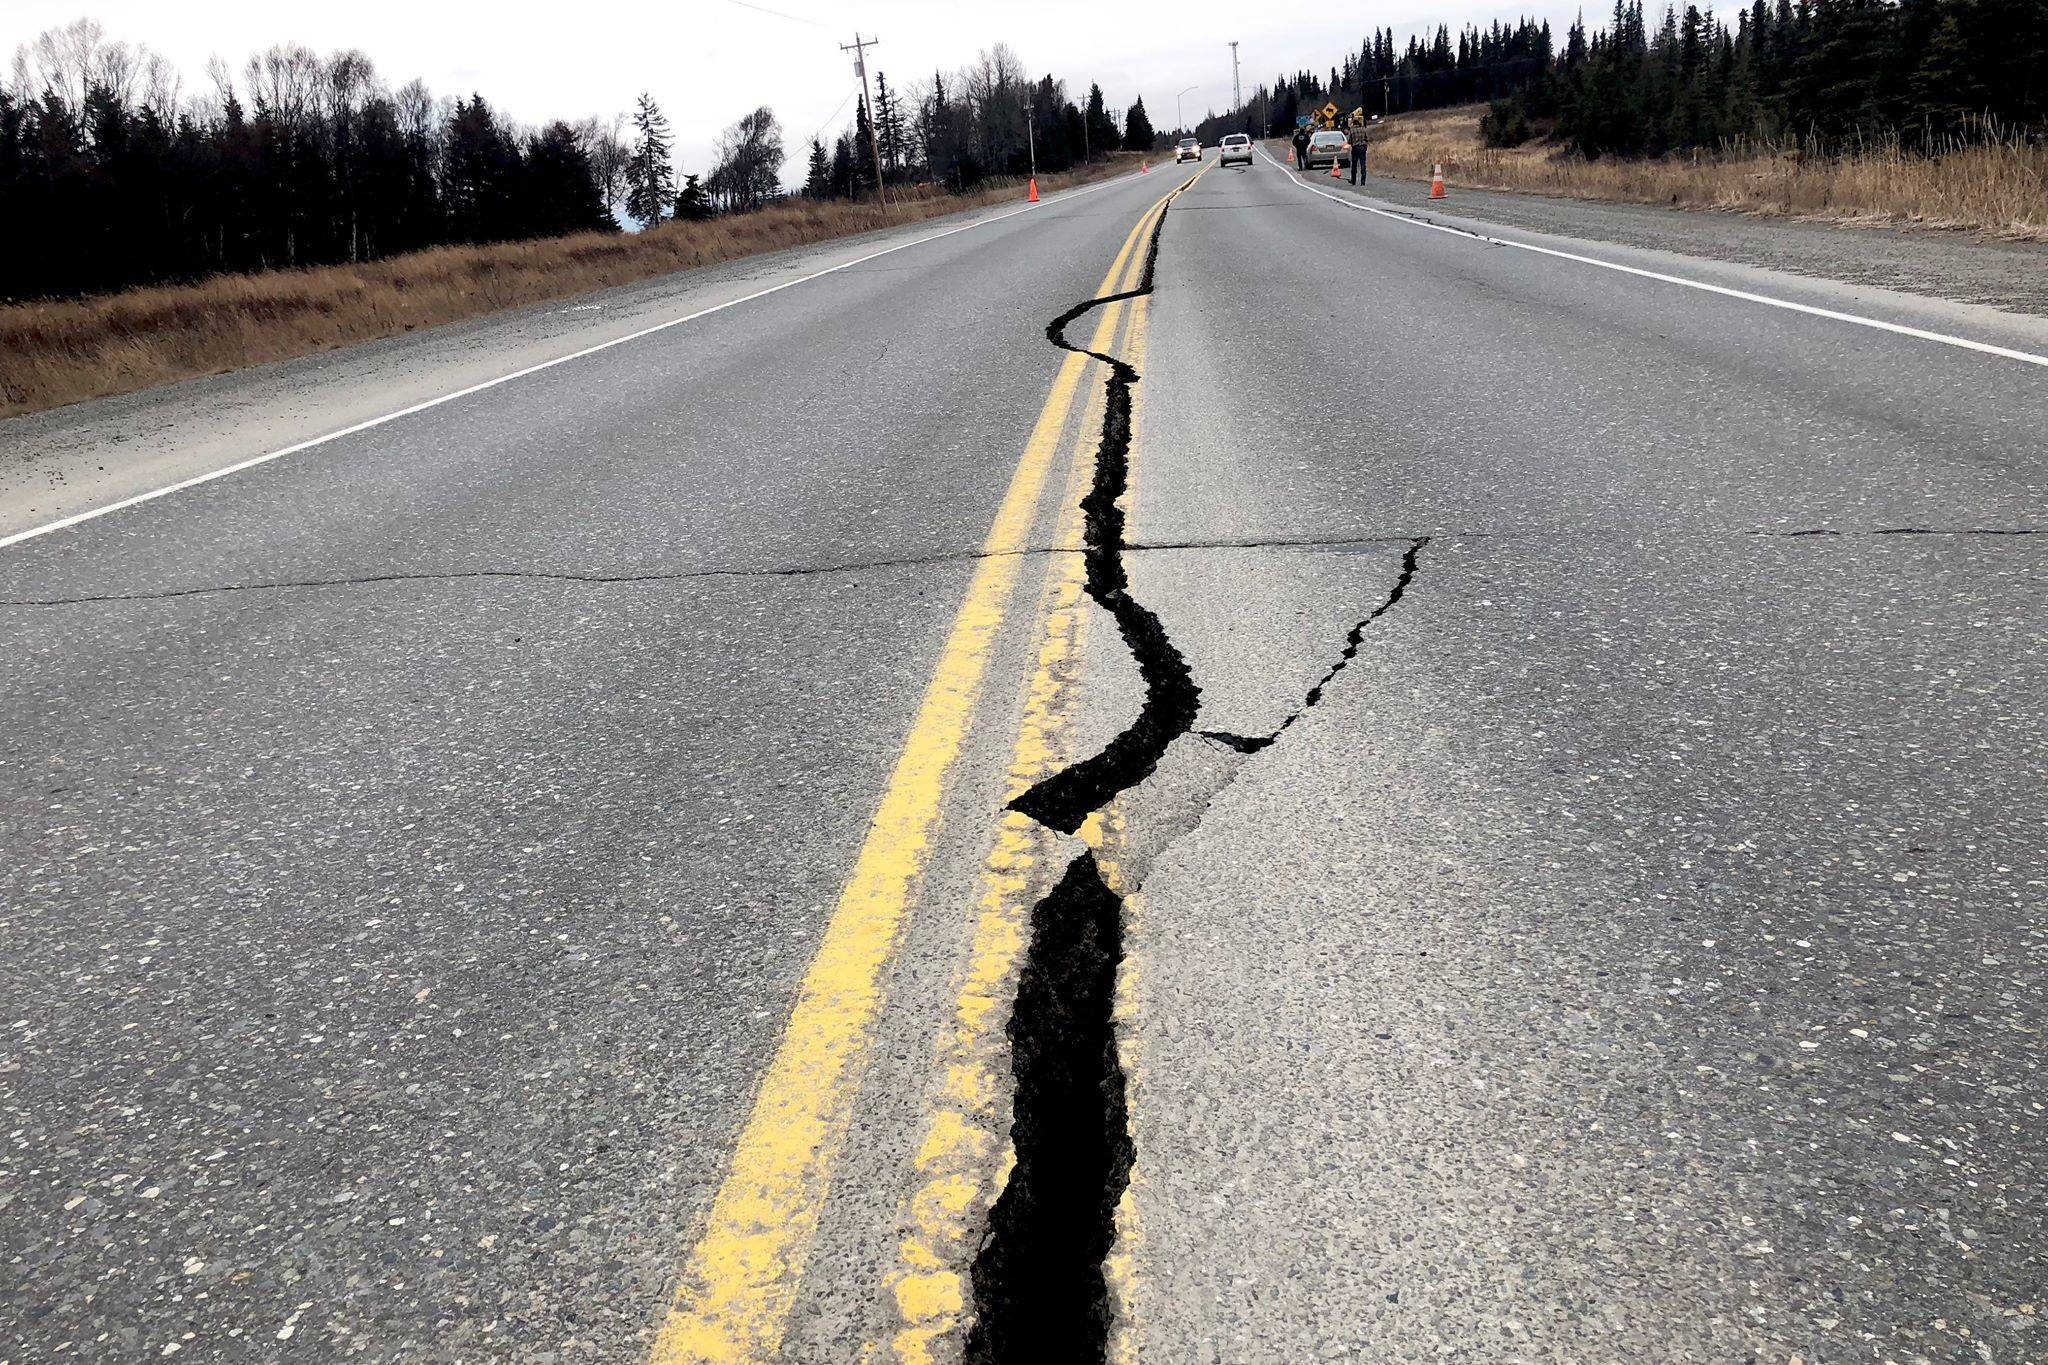 The road at Mile 19 of the Kenai Spur Highway near Nikiski cracked down the middle after the Friday, Nov. 30, 2018 earthquake near Anchorage, Alaska. (Photo by Victoria Petersen/Peninsula Clarion)